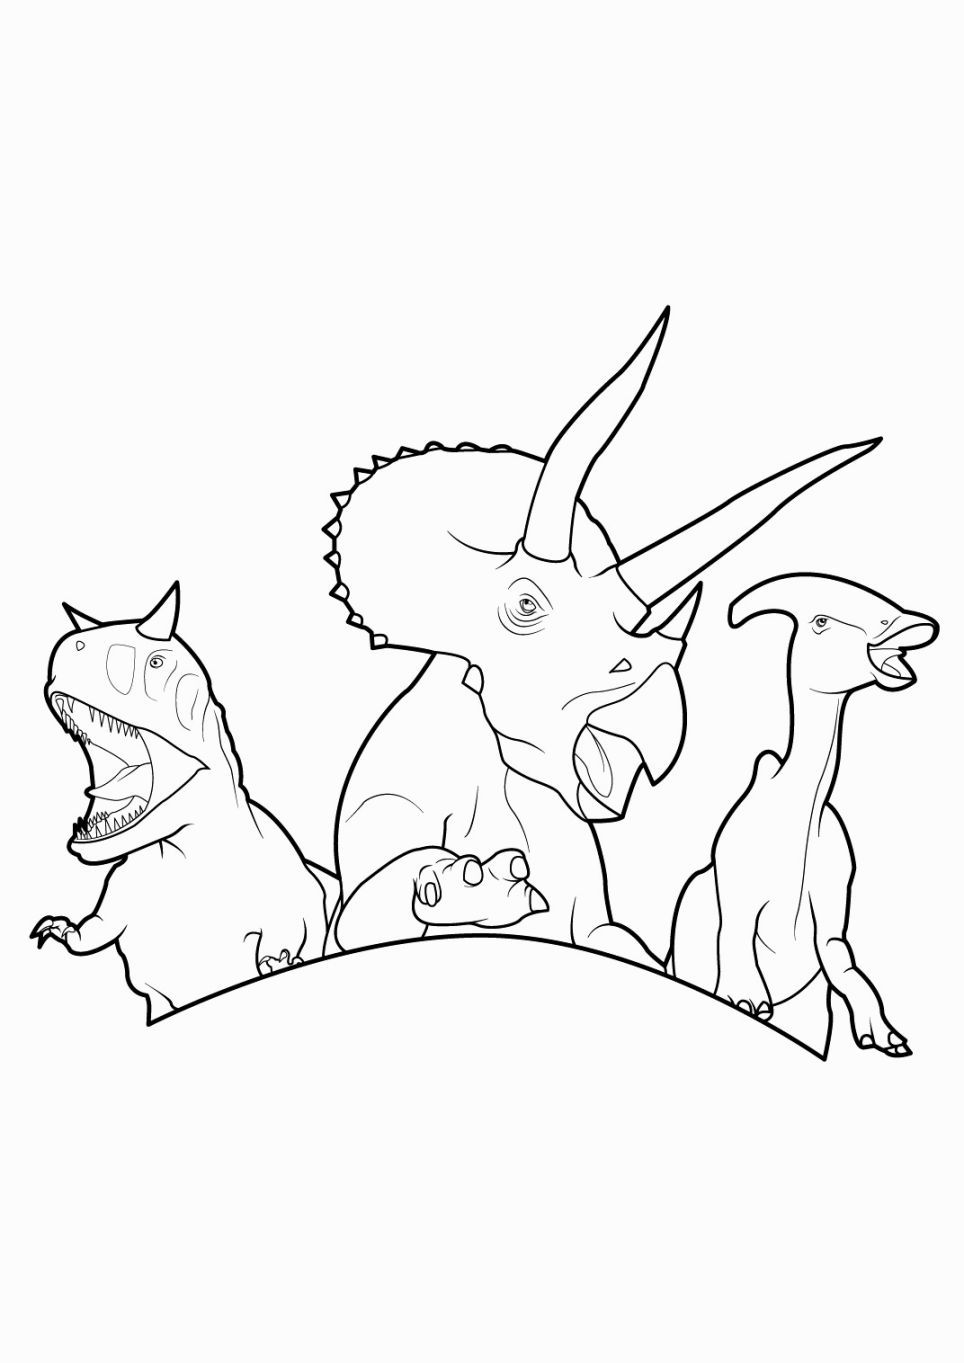 Coloring pages dinosaurs and dragons - Dinosaur King Coloring Pages Coloring Pagesdinosaursdragons